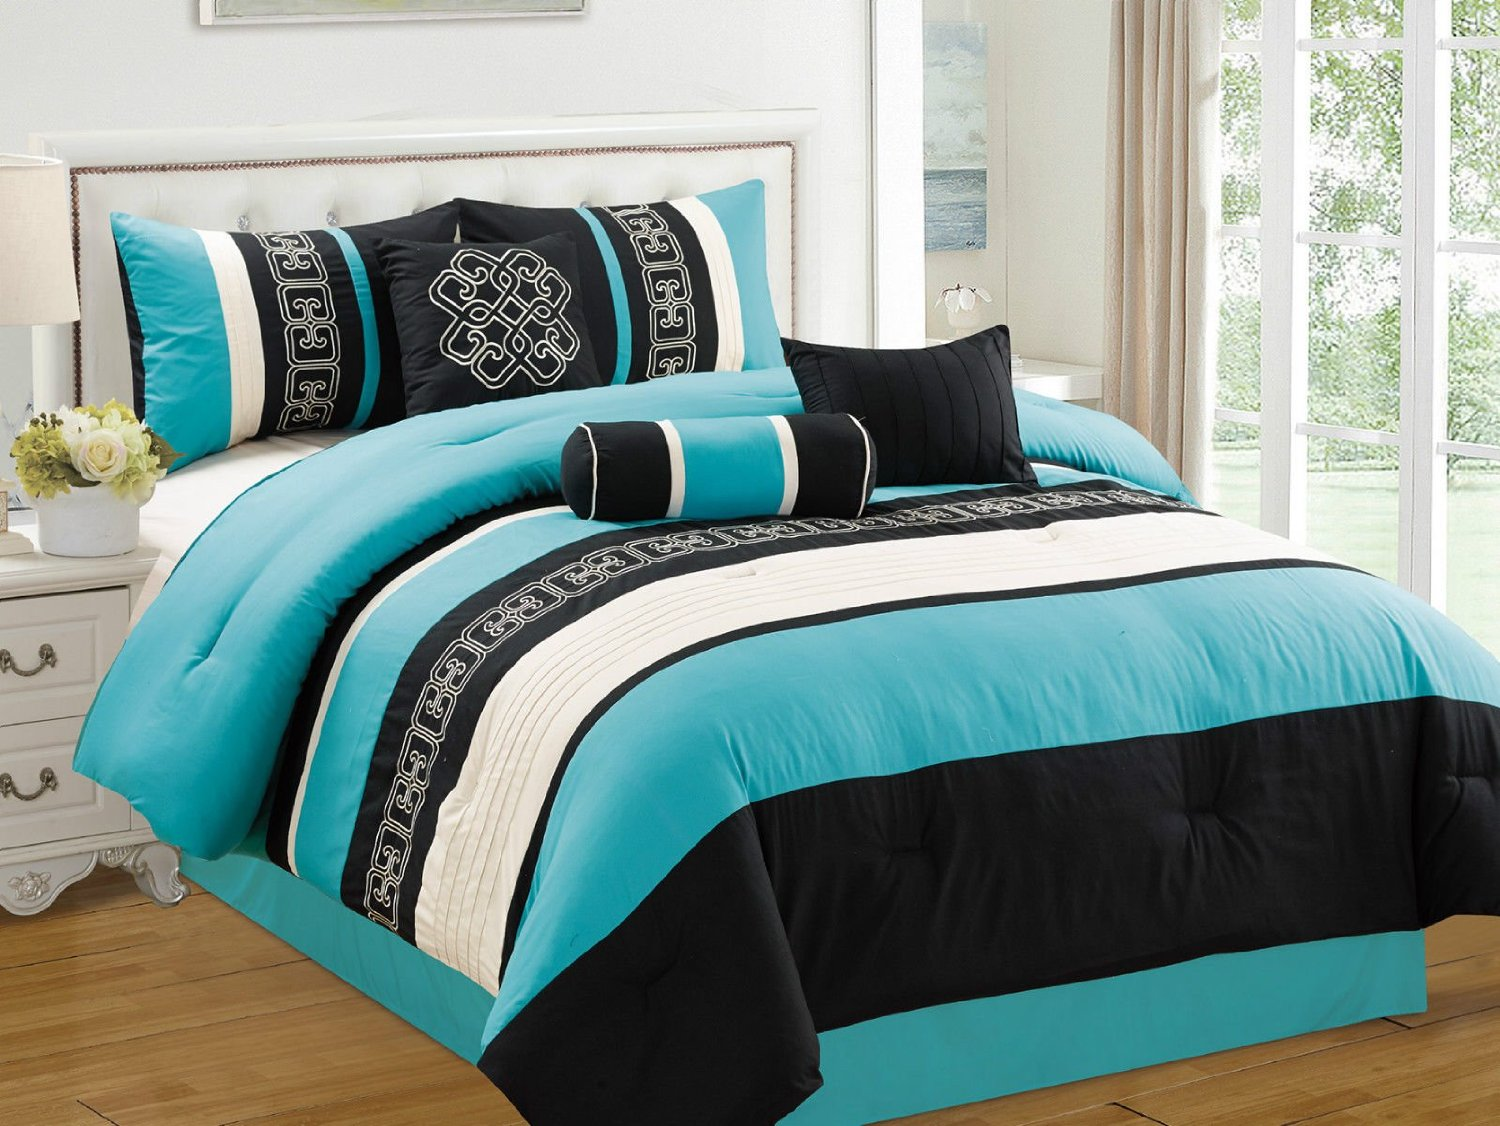 Total fab black white and turquoise bedding for Black and white and turquoise bedroom ideas